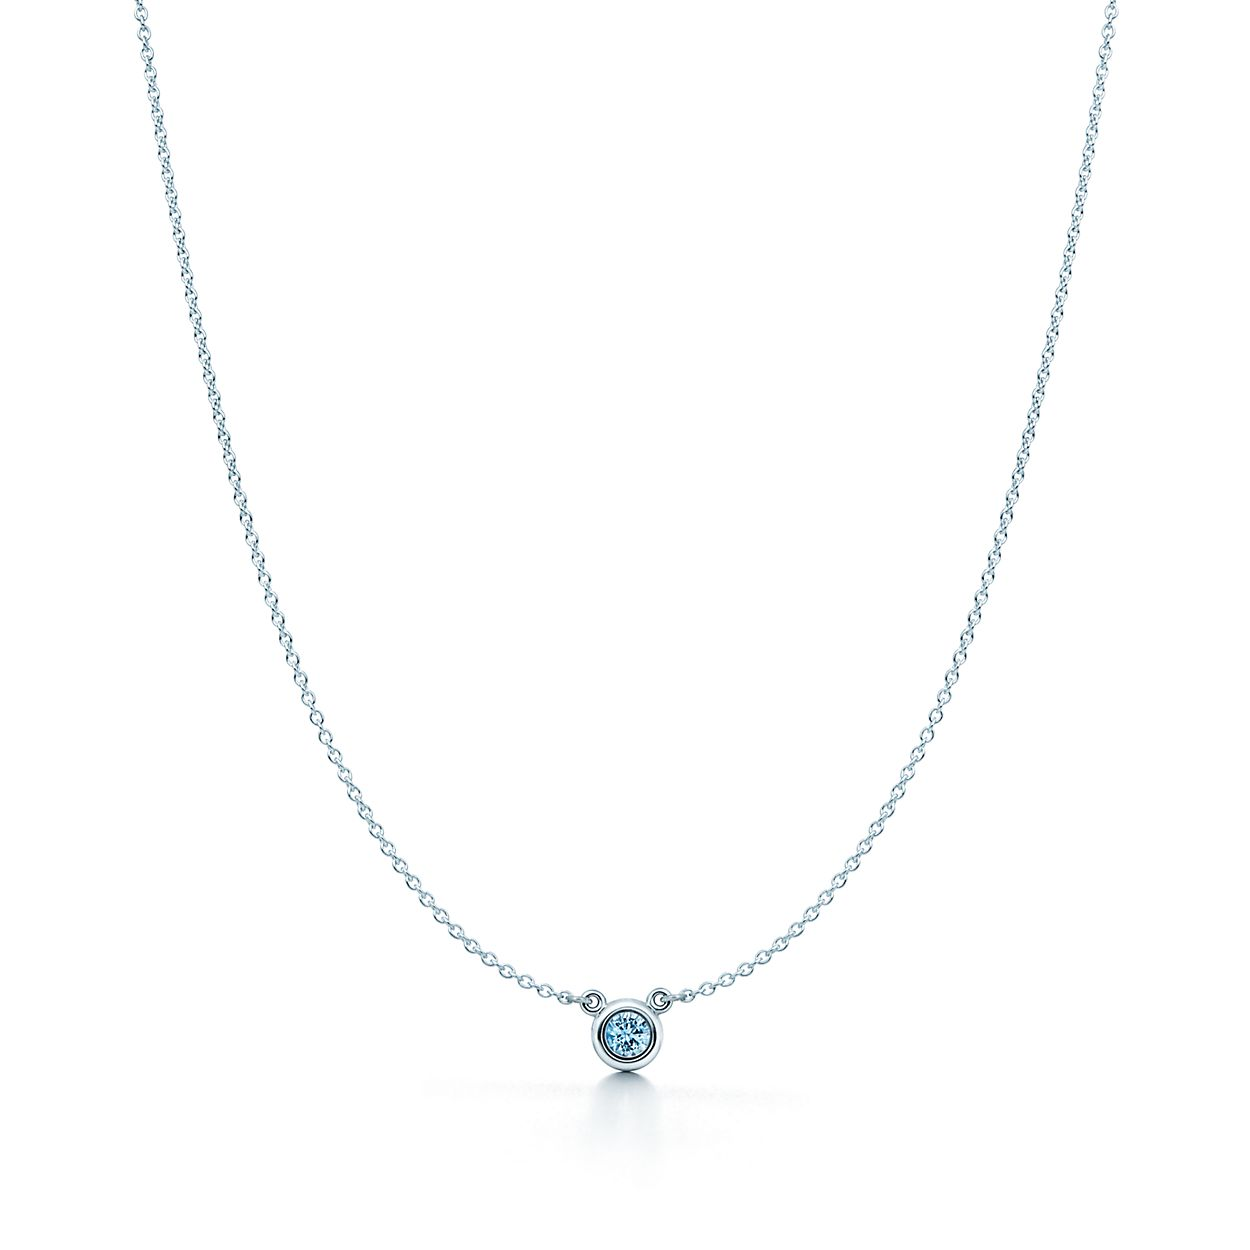 white pendant aqua necklaces total marine diamond aquamarine emerald ct gem in gold weight aa necklace cut